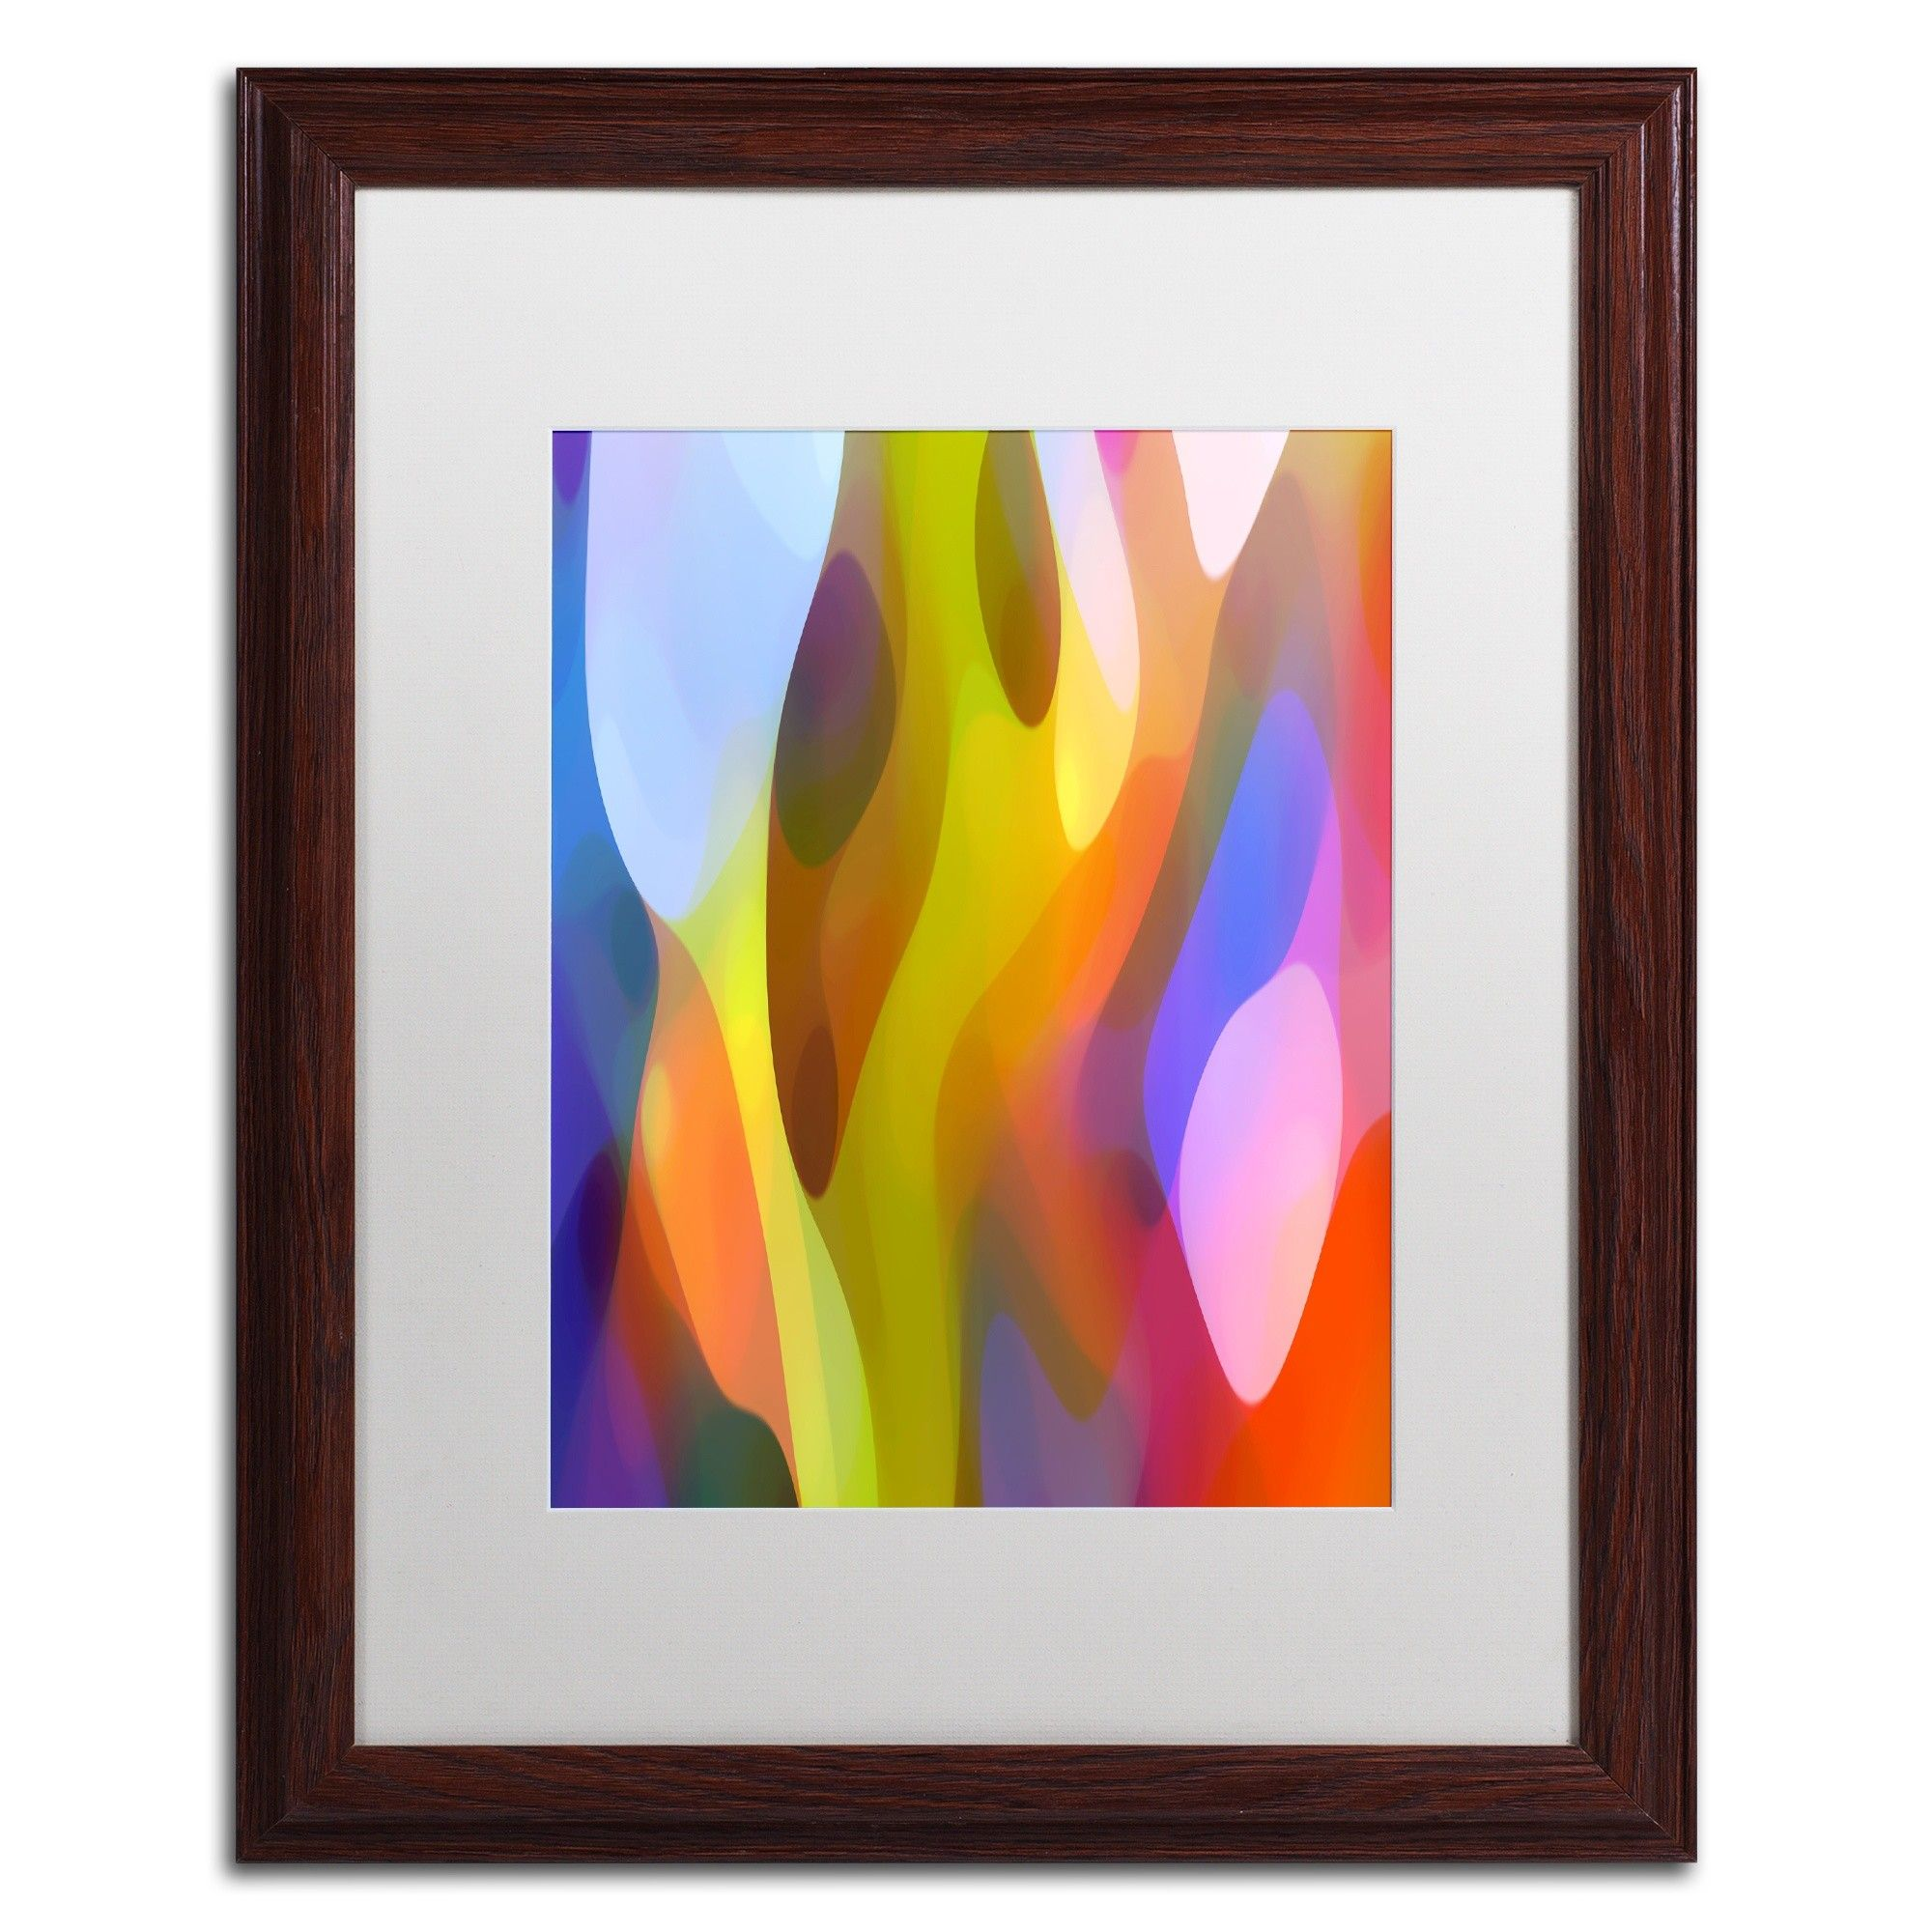 'Dappled Light 3' by Amy Vangsgard Framed Graphic Art